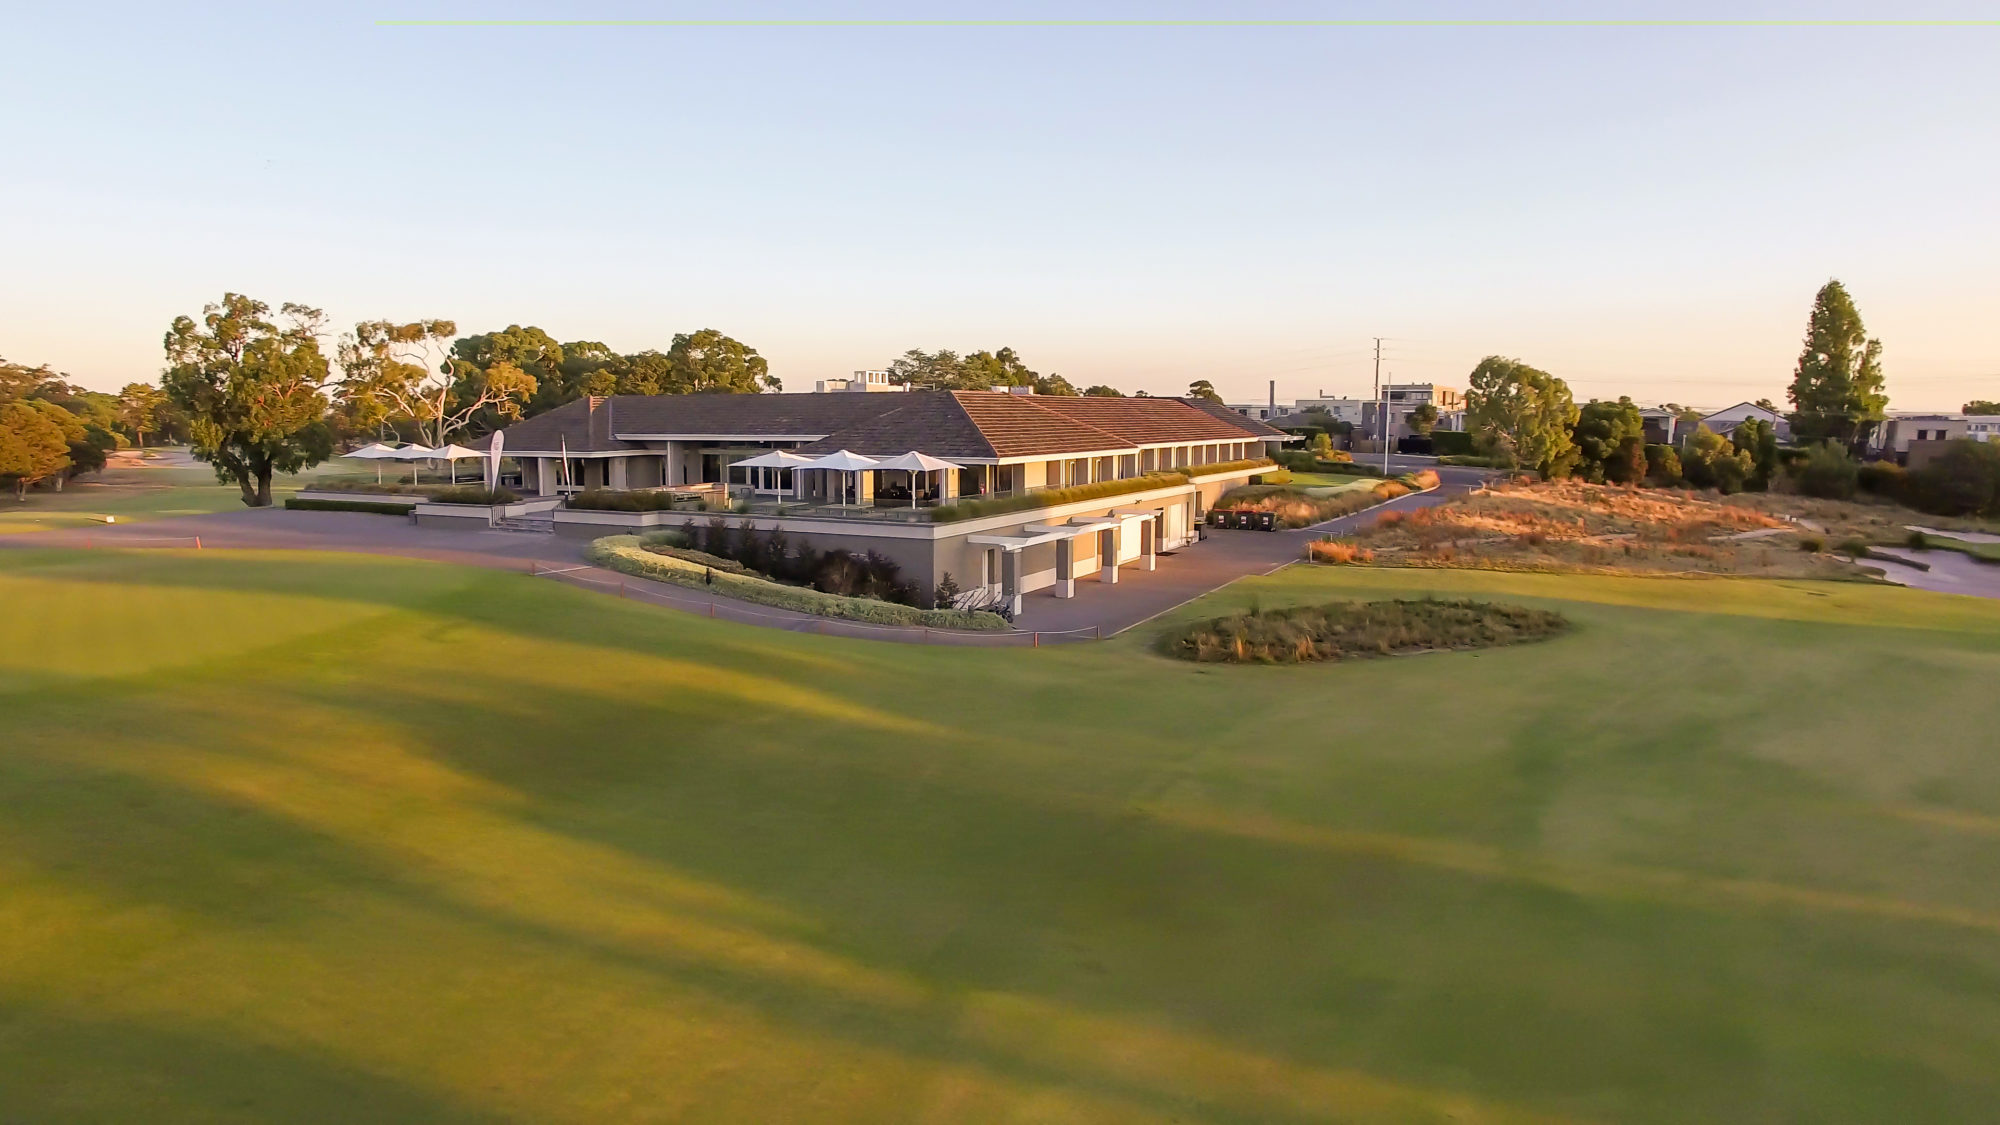 Tee Off at Woodlands Golf Club - 18 holes for $10